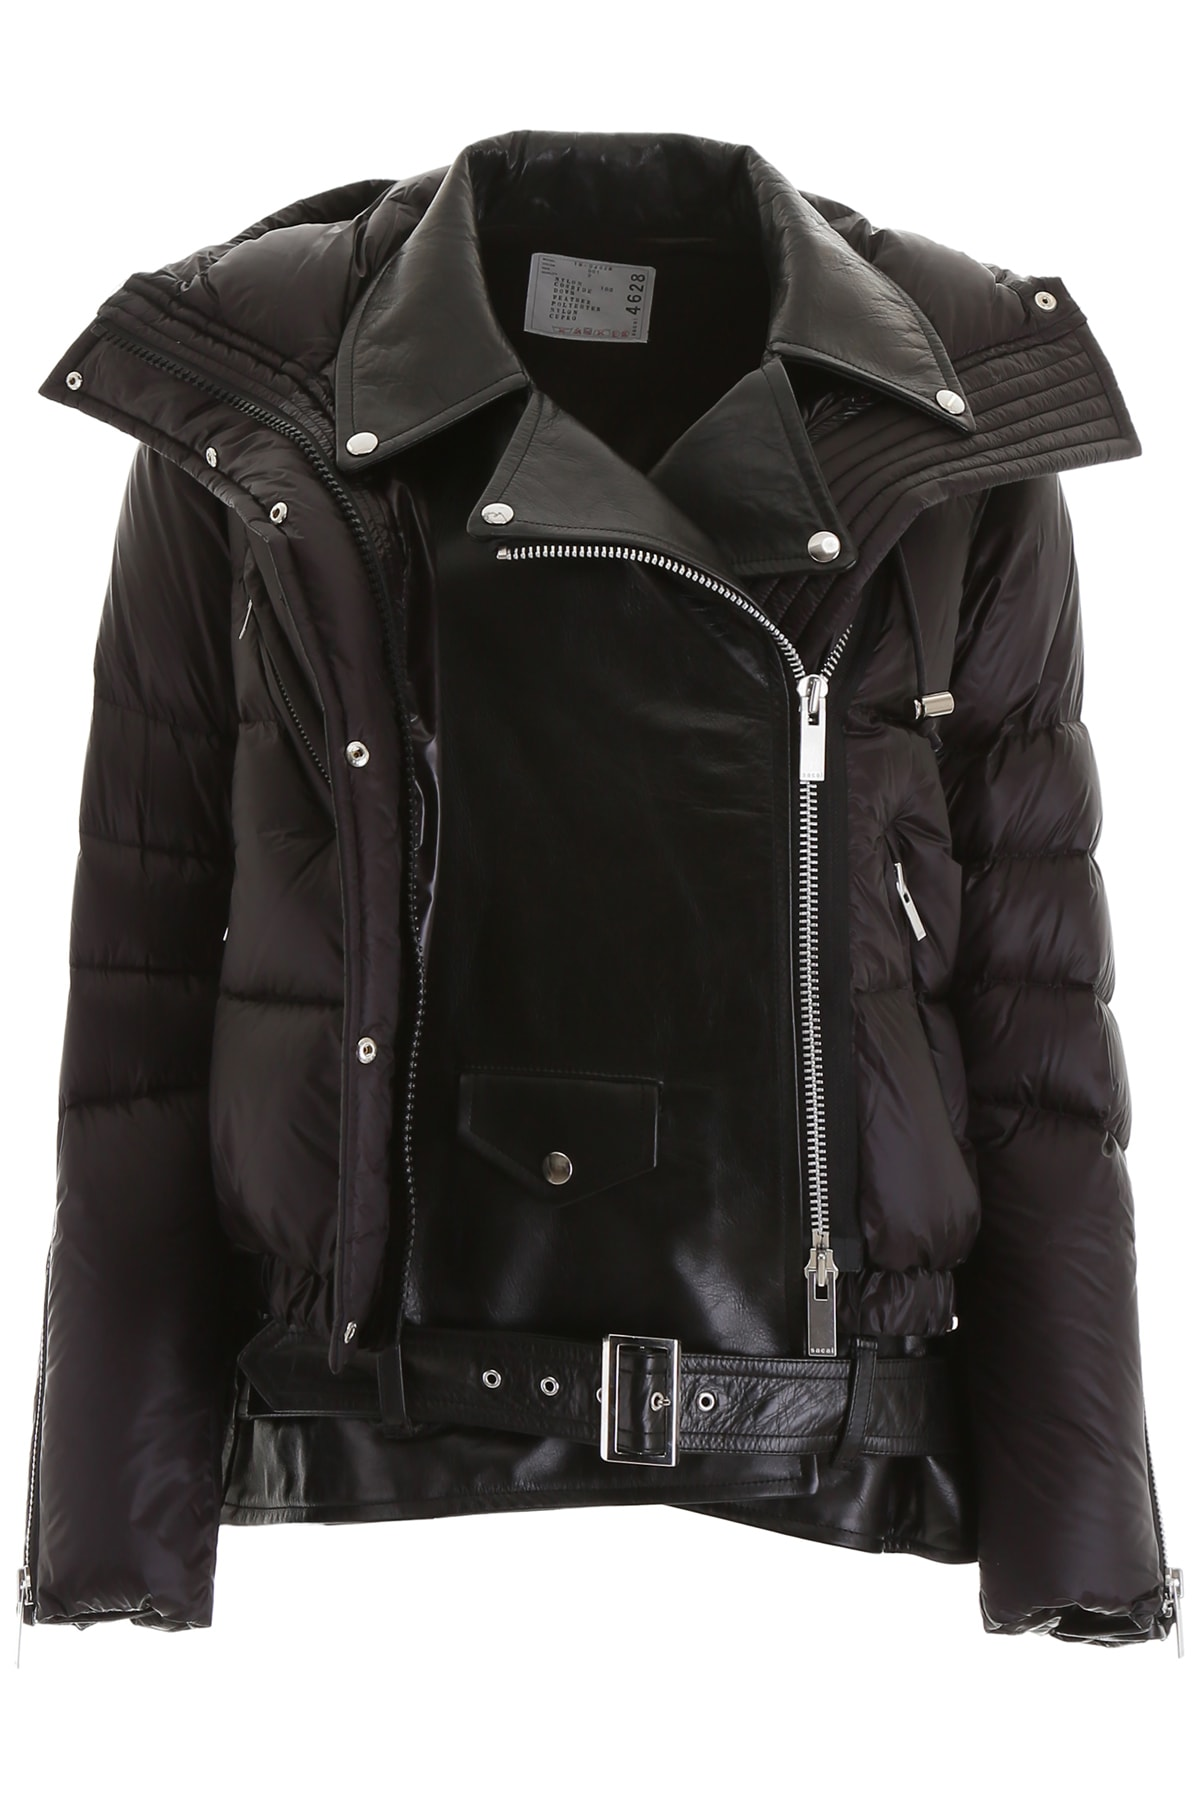 Sacai Double Layer Puffer Jacket